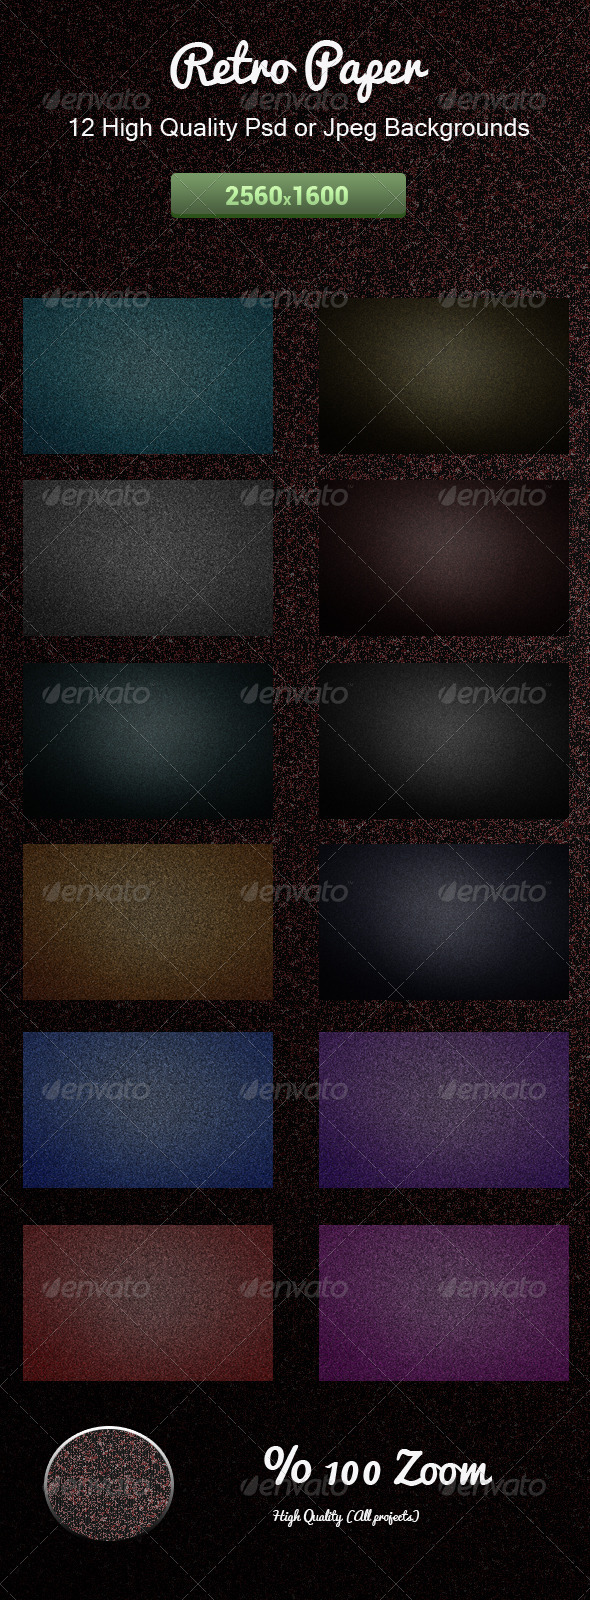 Retro Paper Background - Abstract Backgrounds